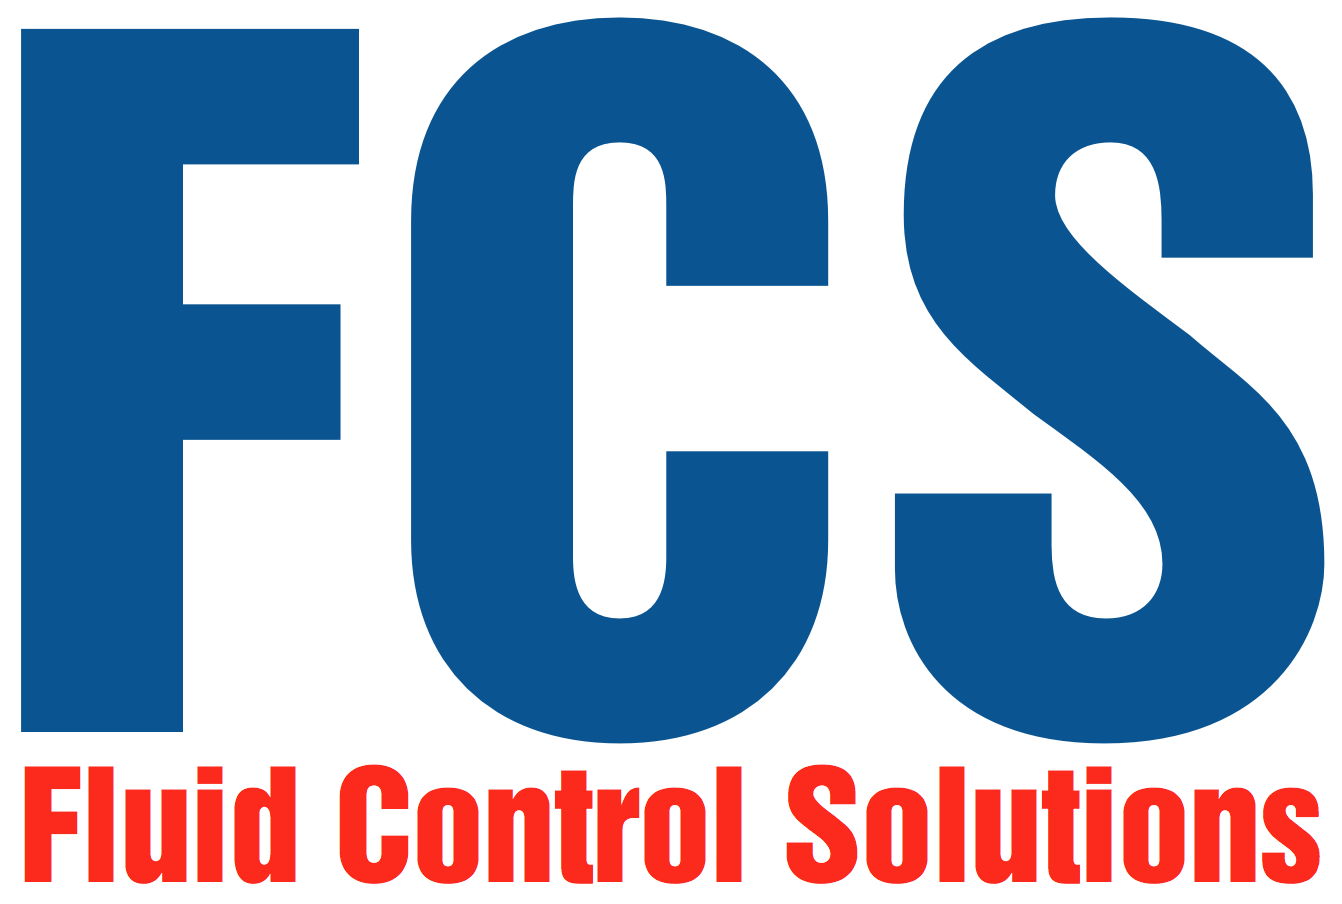 We Focus on Fluid Control Solutions